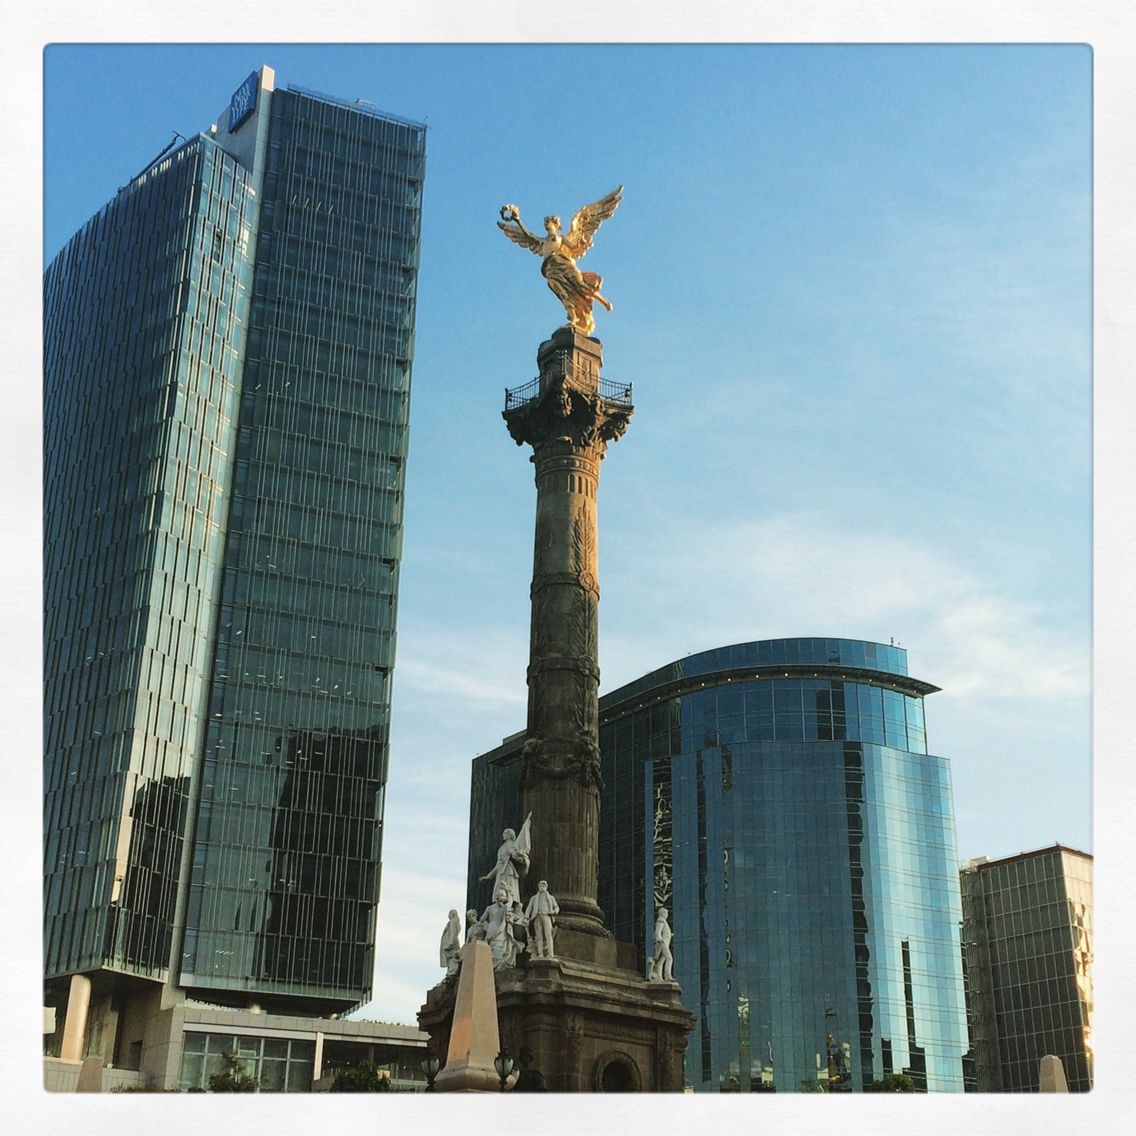 Ángel de la Independencia. #mexico